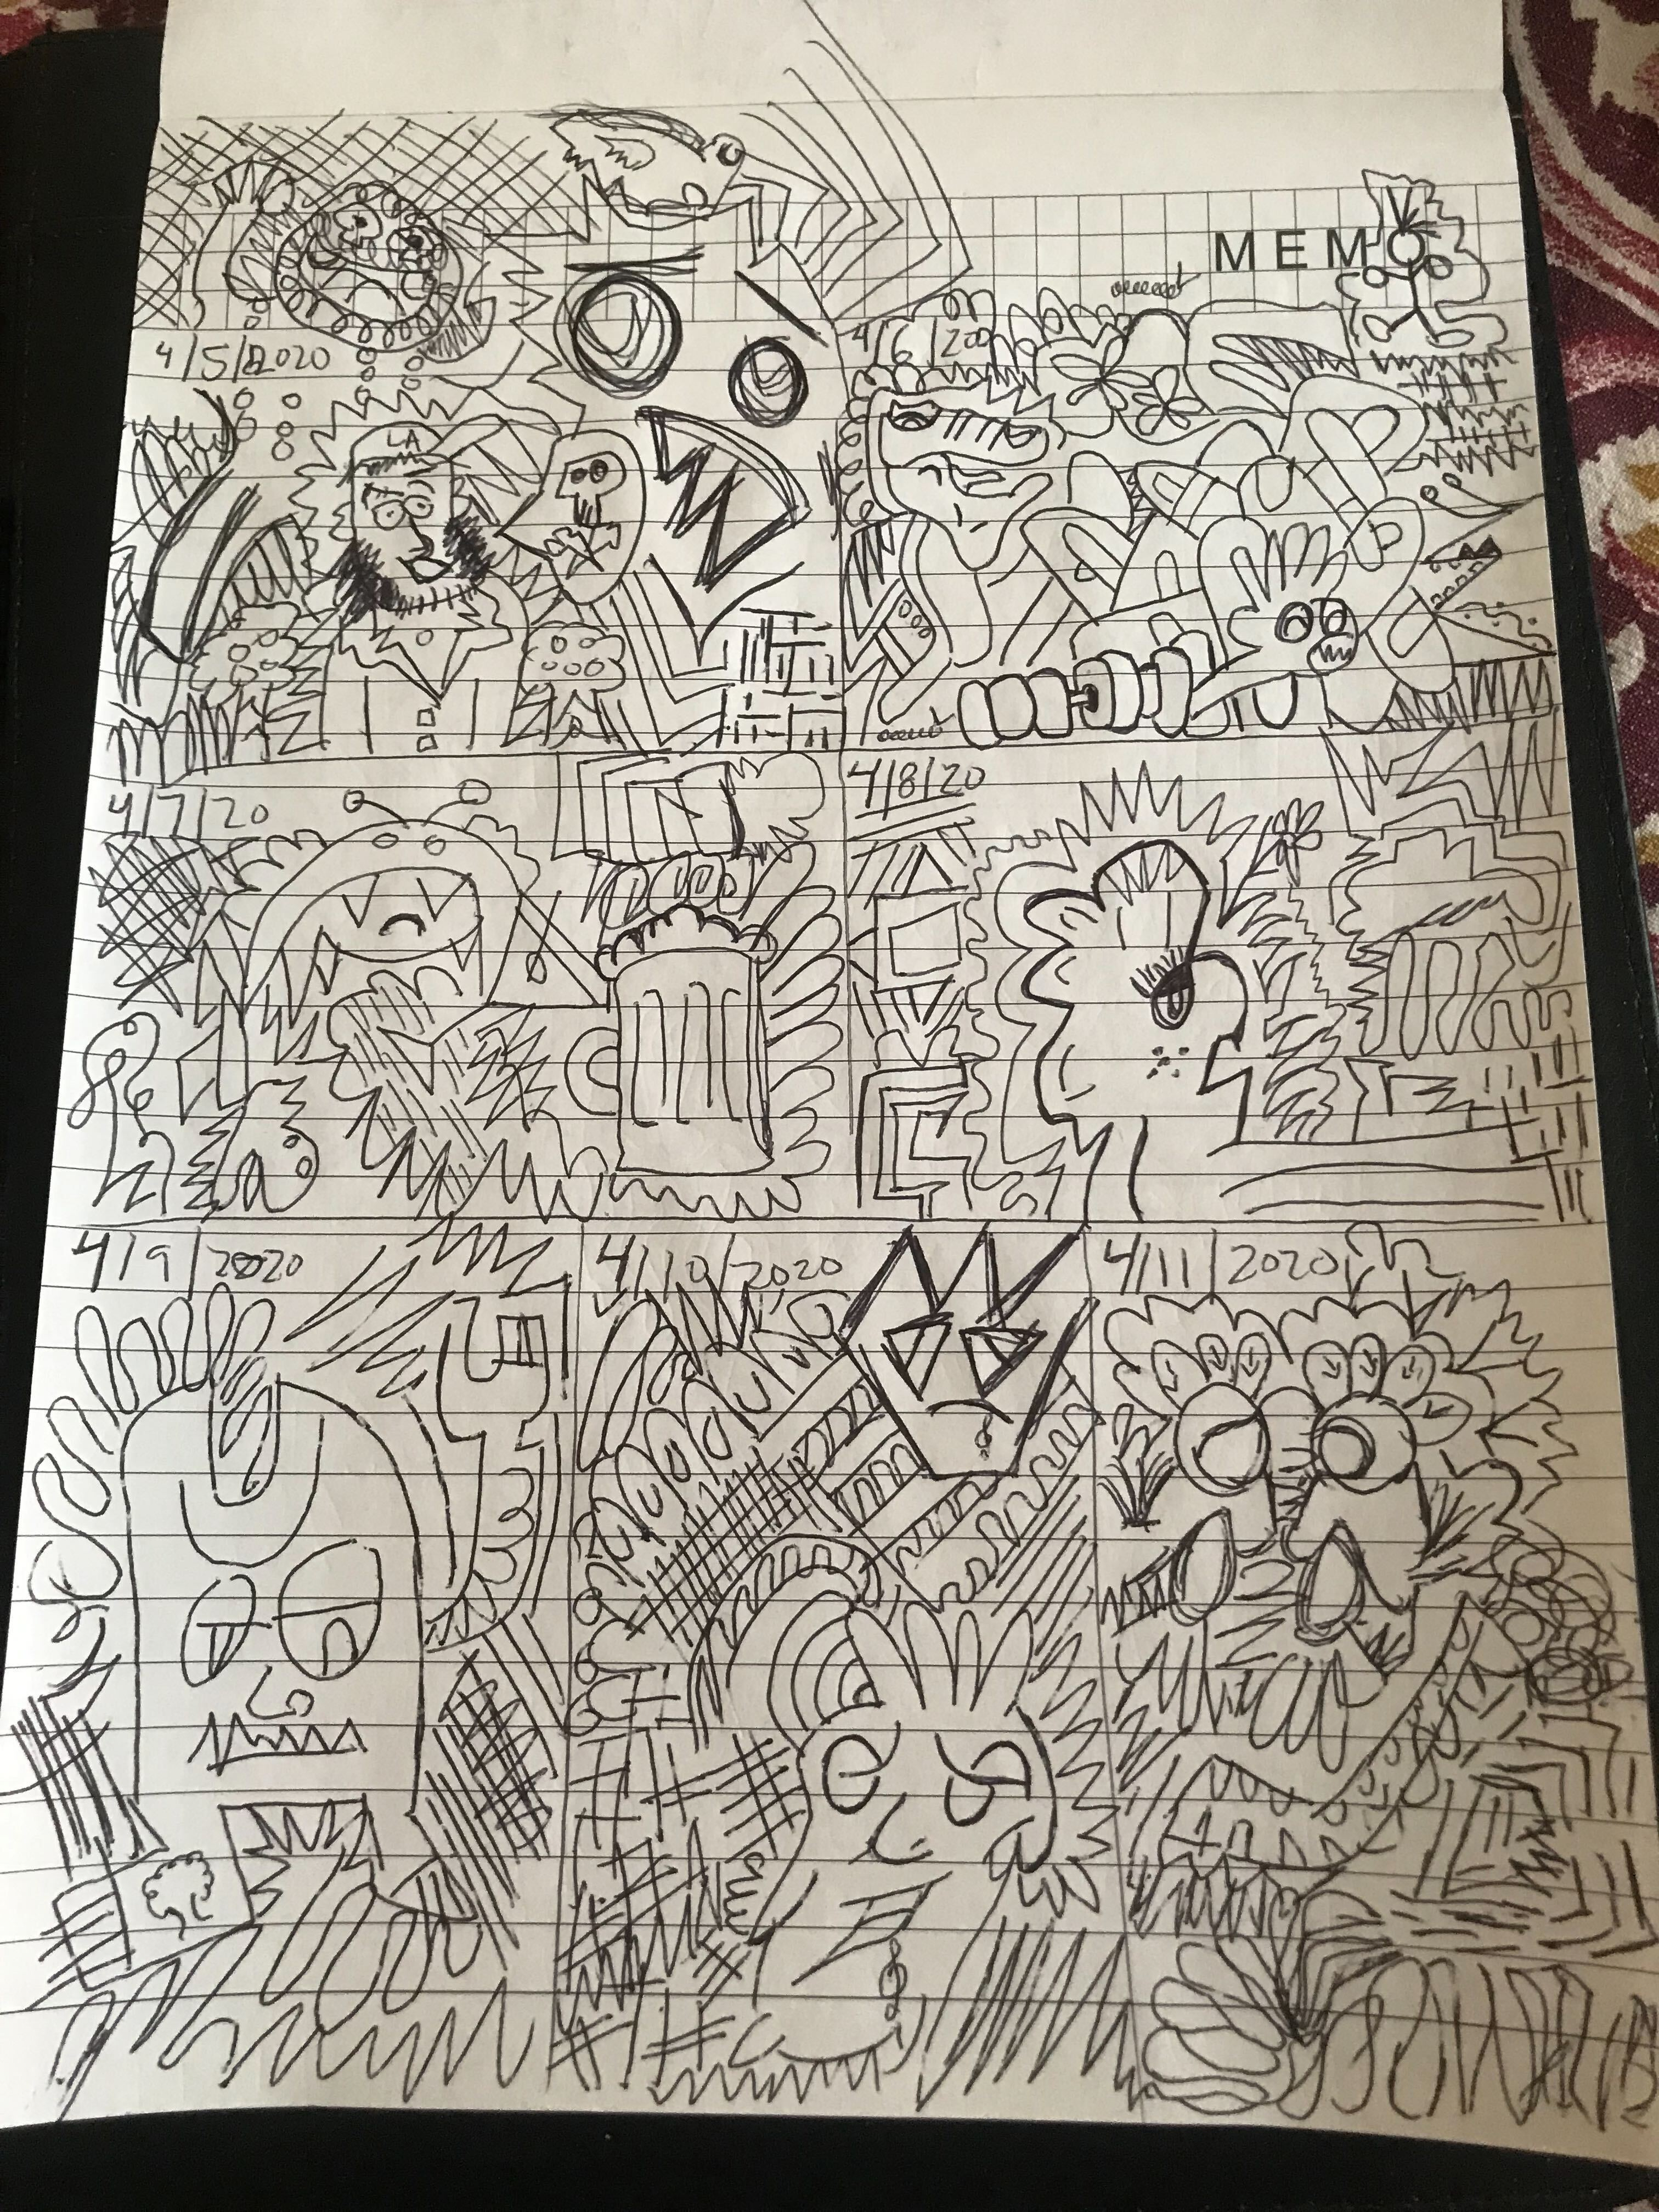 a piece of notebook paper covered in doodles